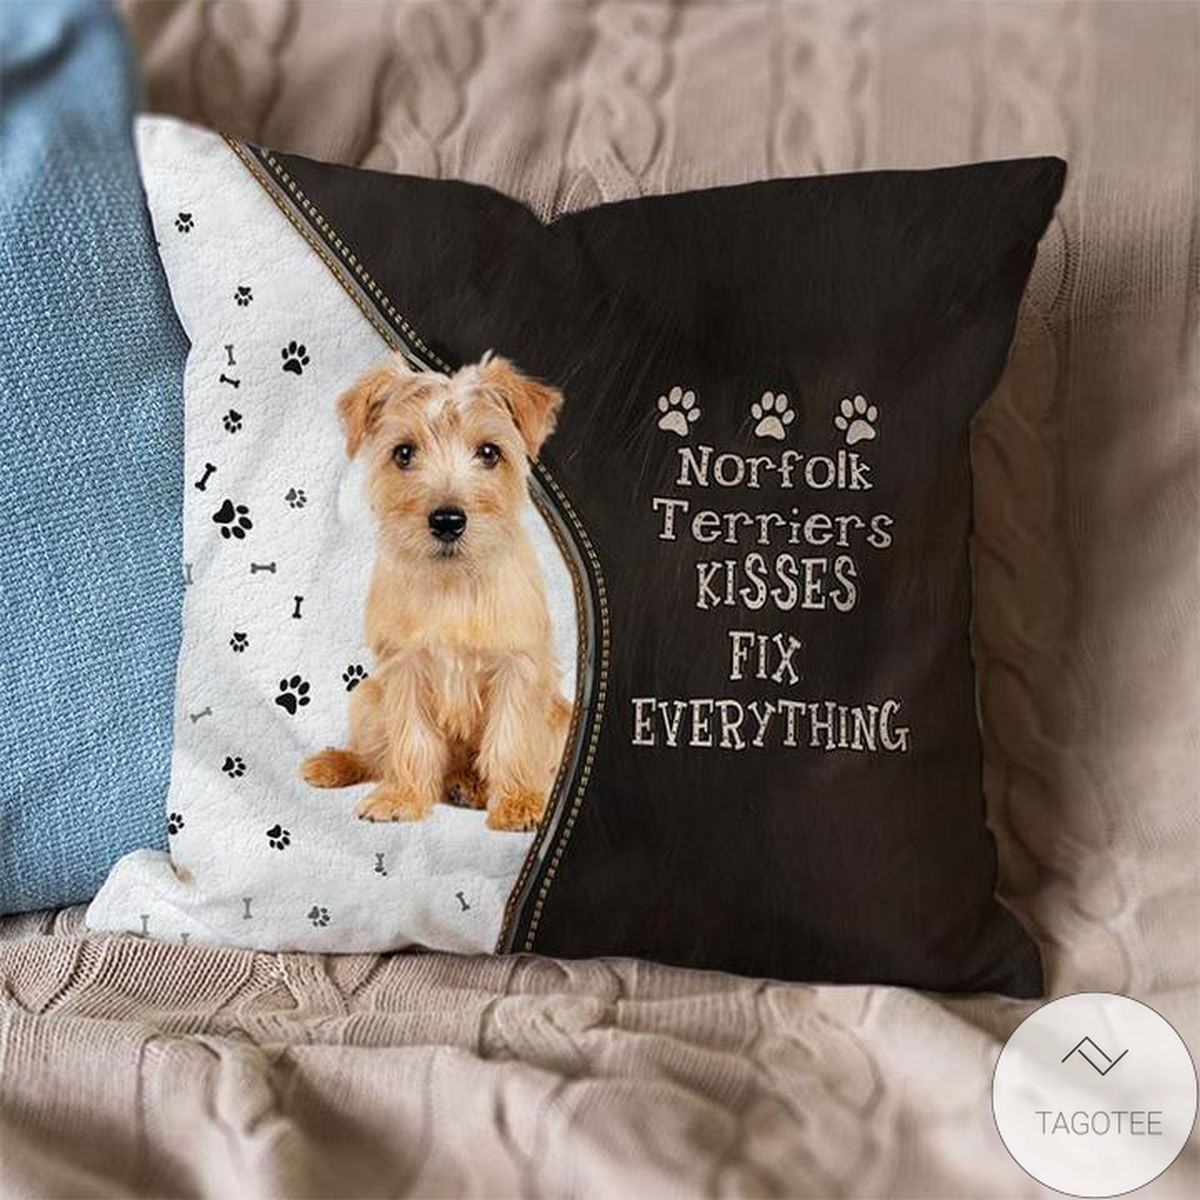 Norfolk Terriers Kisses Fix Everything Pillowcase